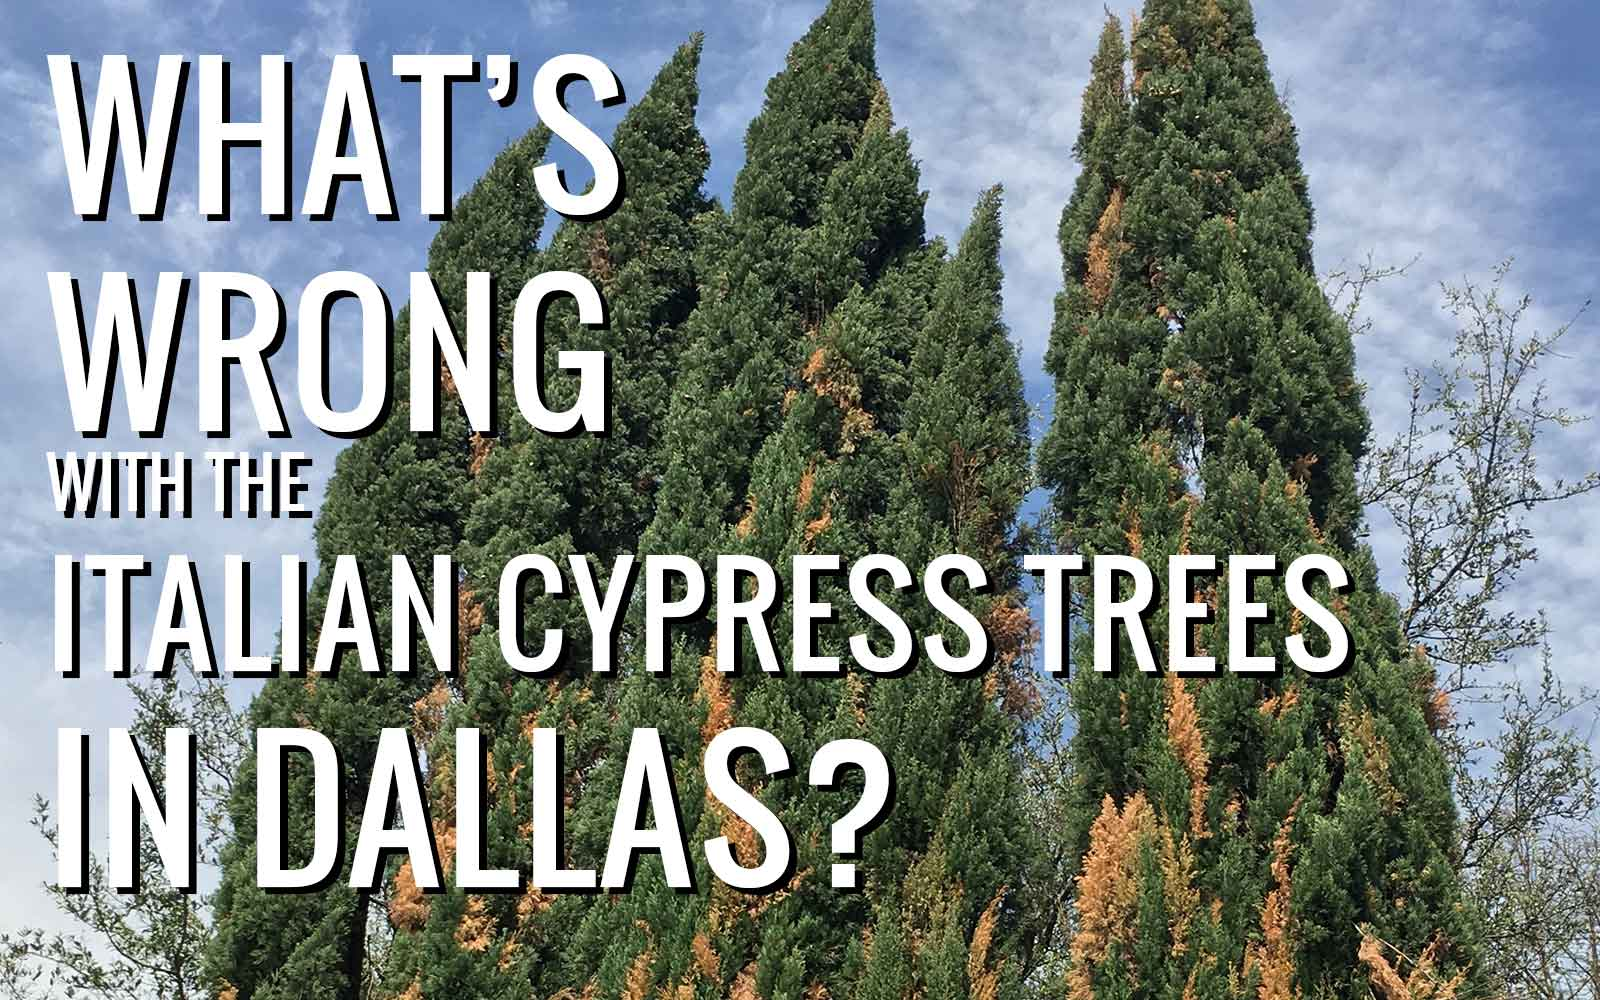 whats-wrong-with-the-italian-cypress-trees-in-dallas-.jpg